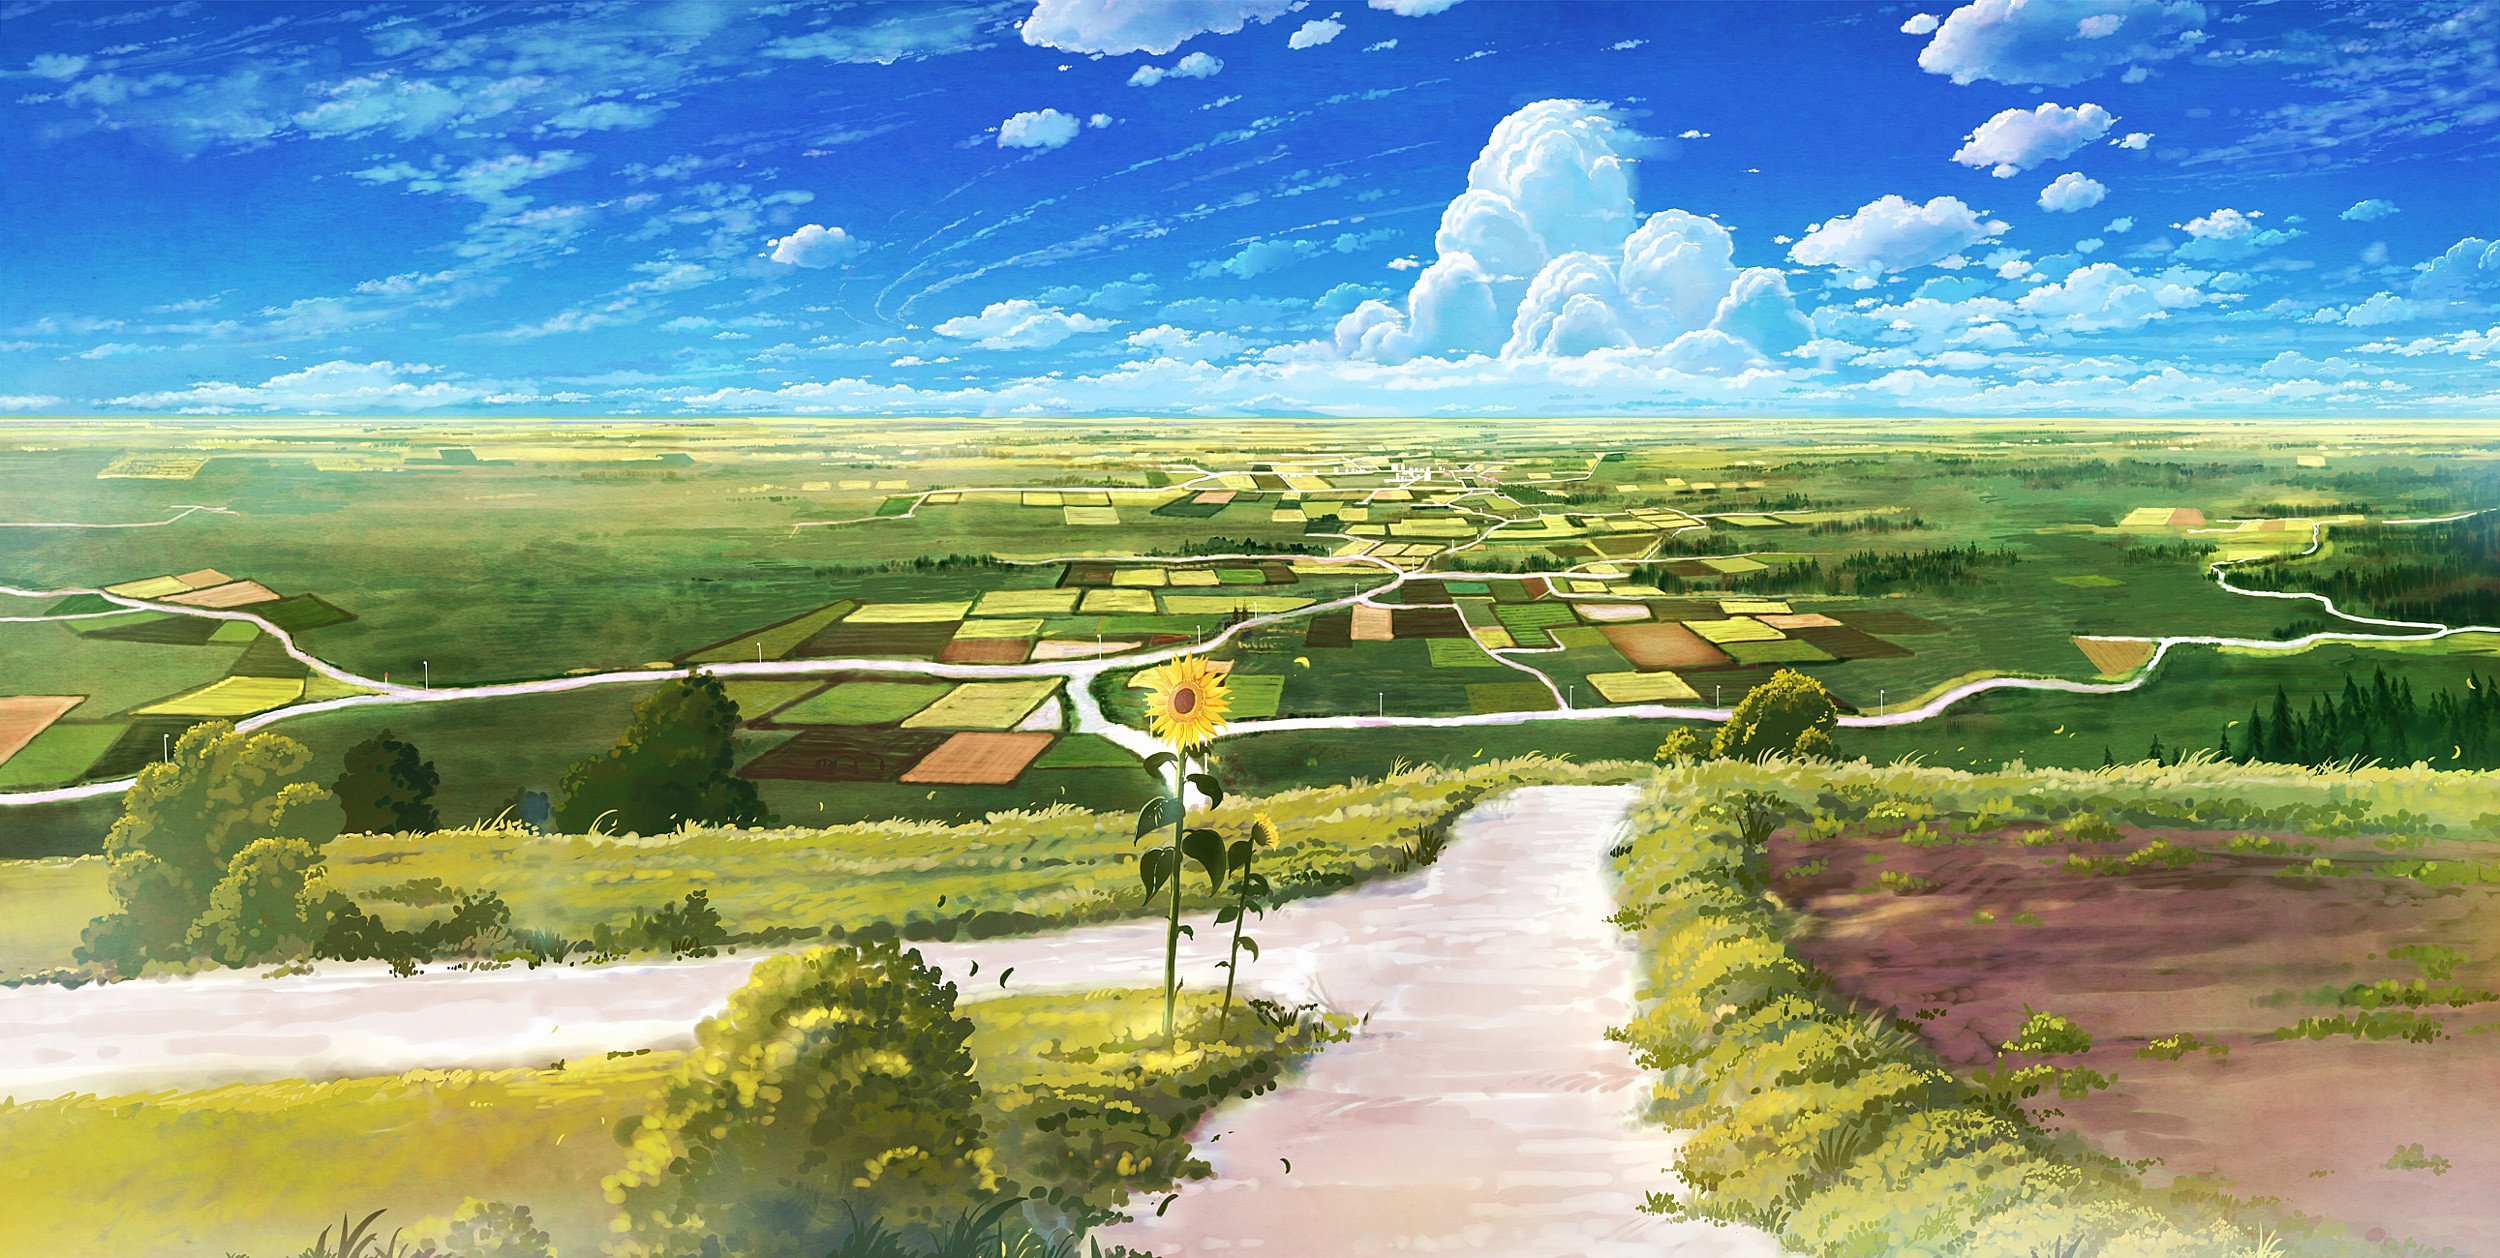 Best ideas about Anime Landscape Wallpaper . Save or Pin Free Anime Landscape Backgrounds Now.